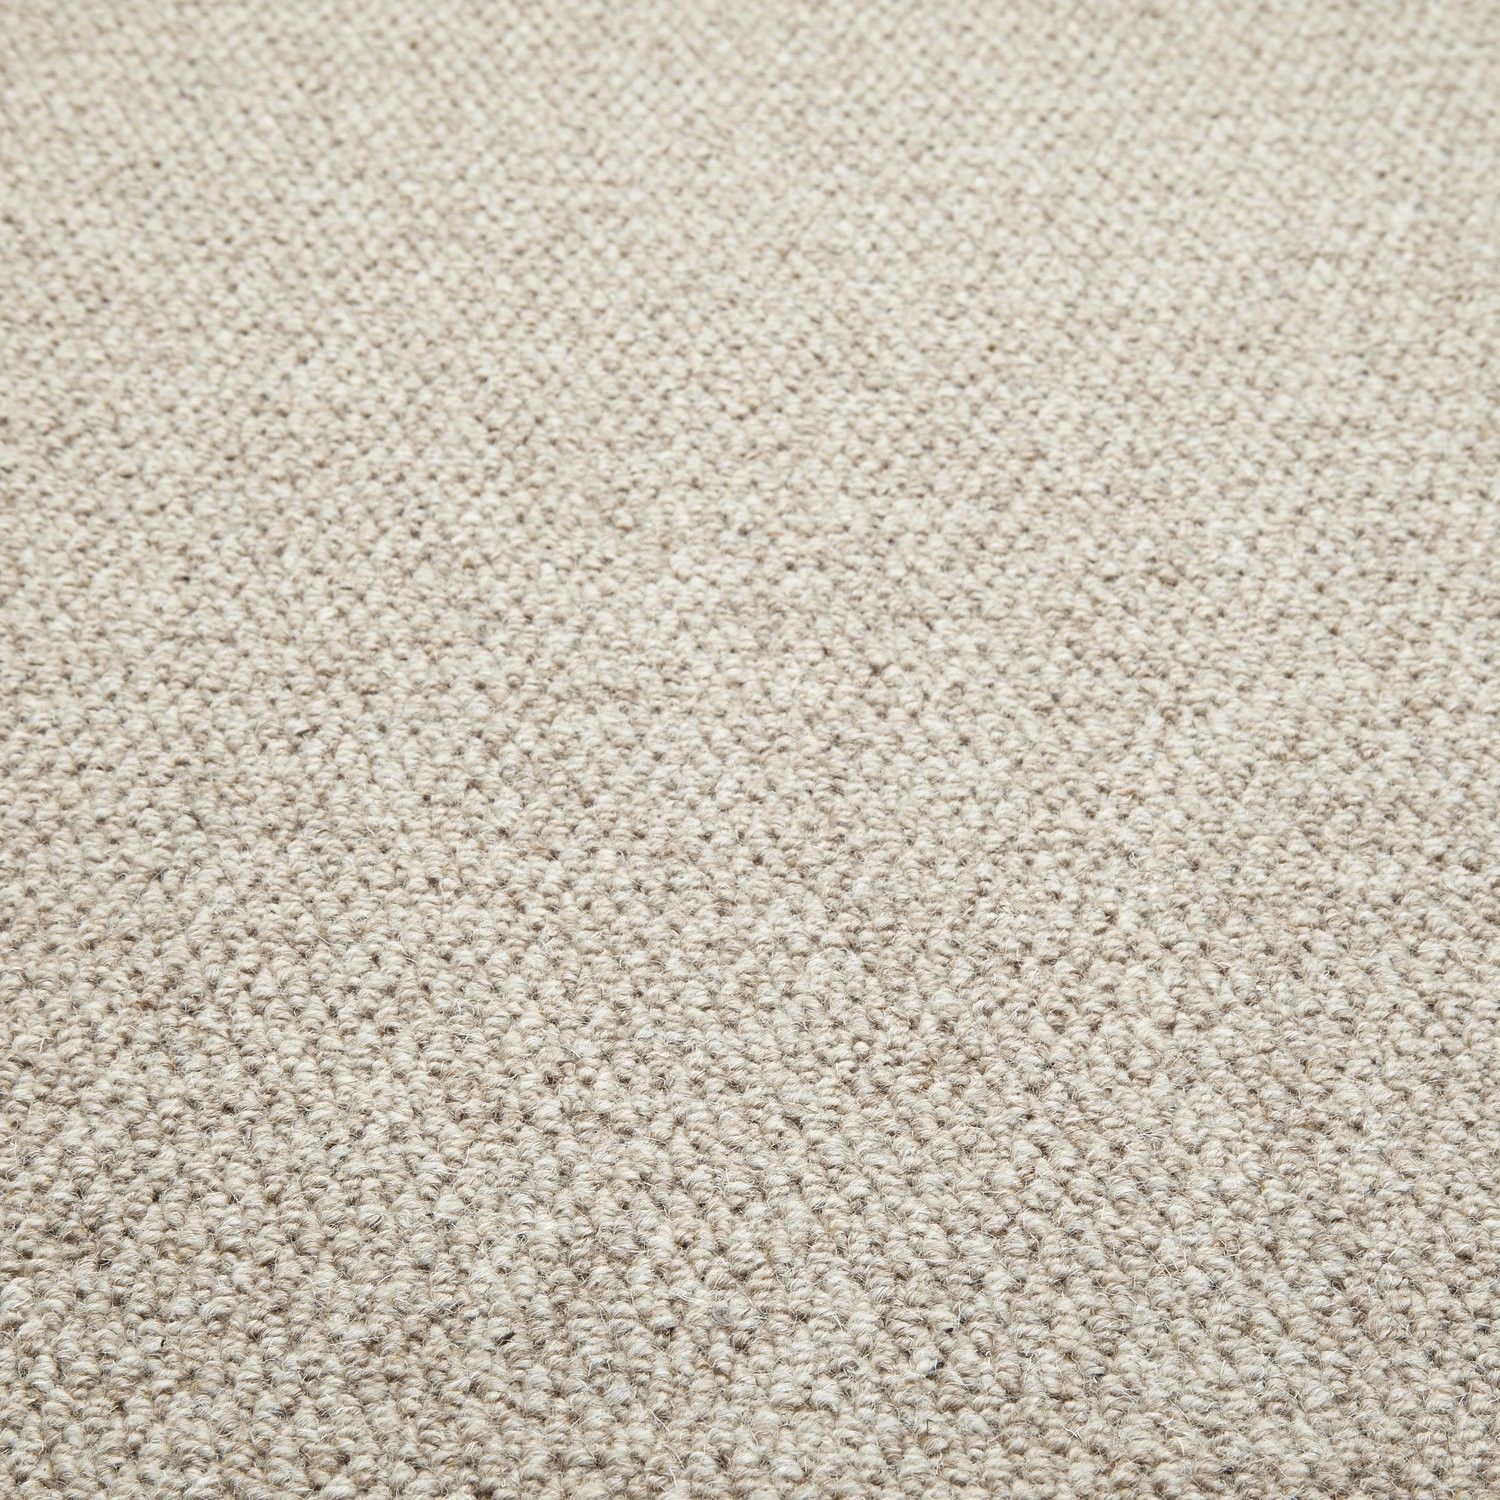 Patterned Wool Carpet